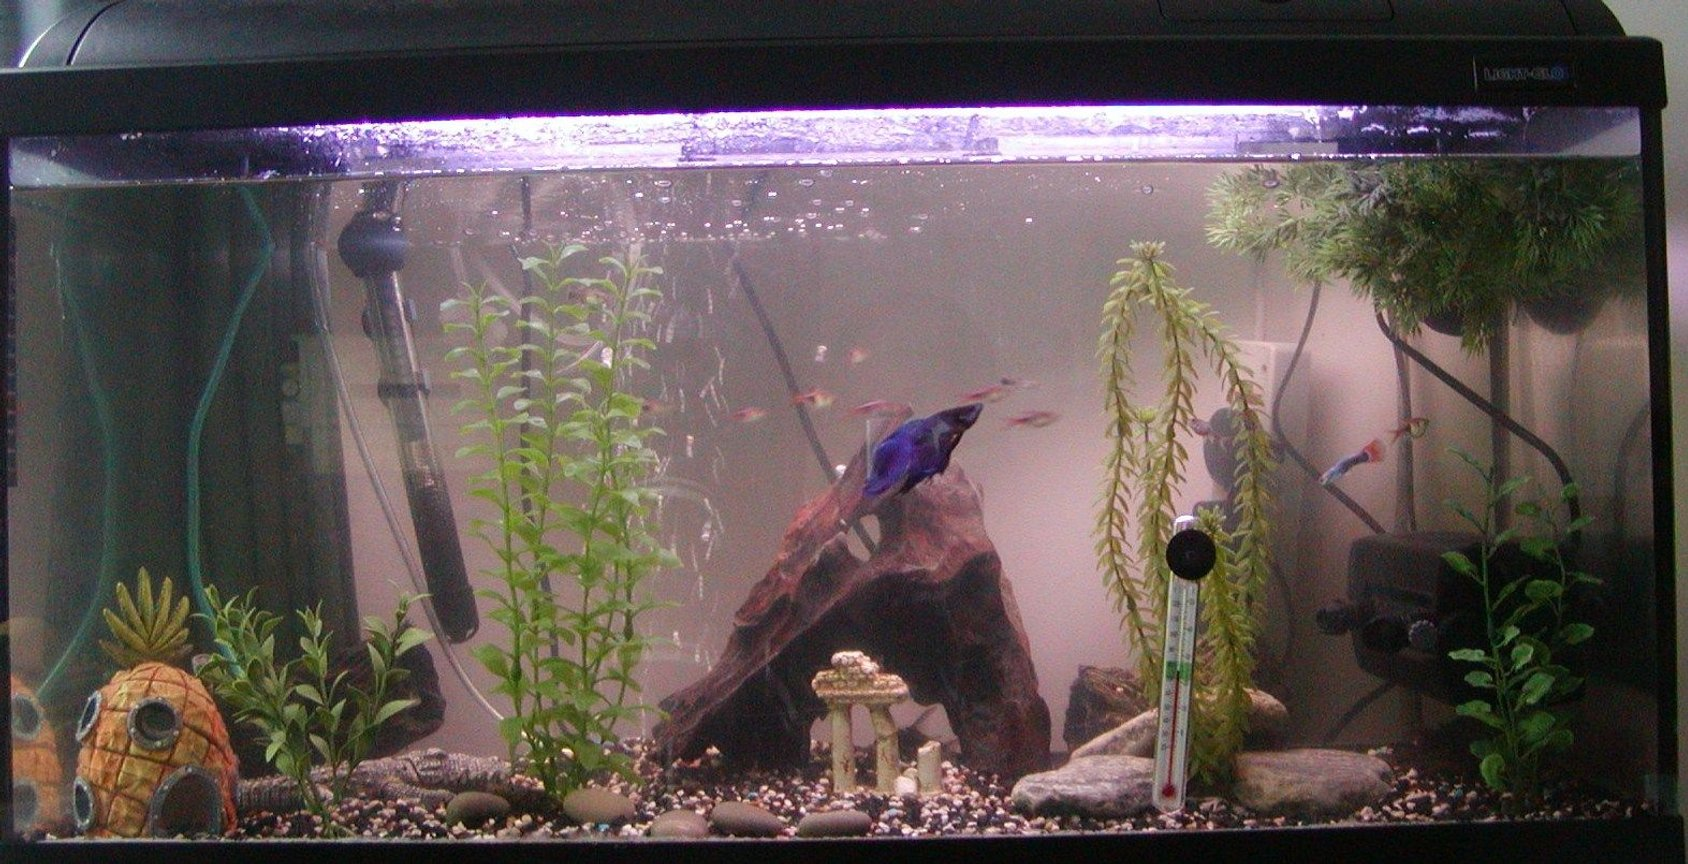 30 gallons freshwater fish tank (mostly fish and non-living decorations) - 30 Gallon tank.